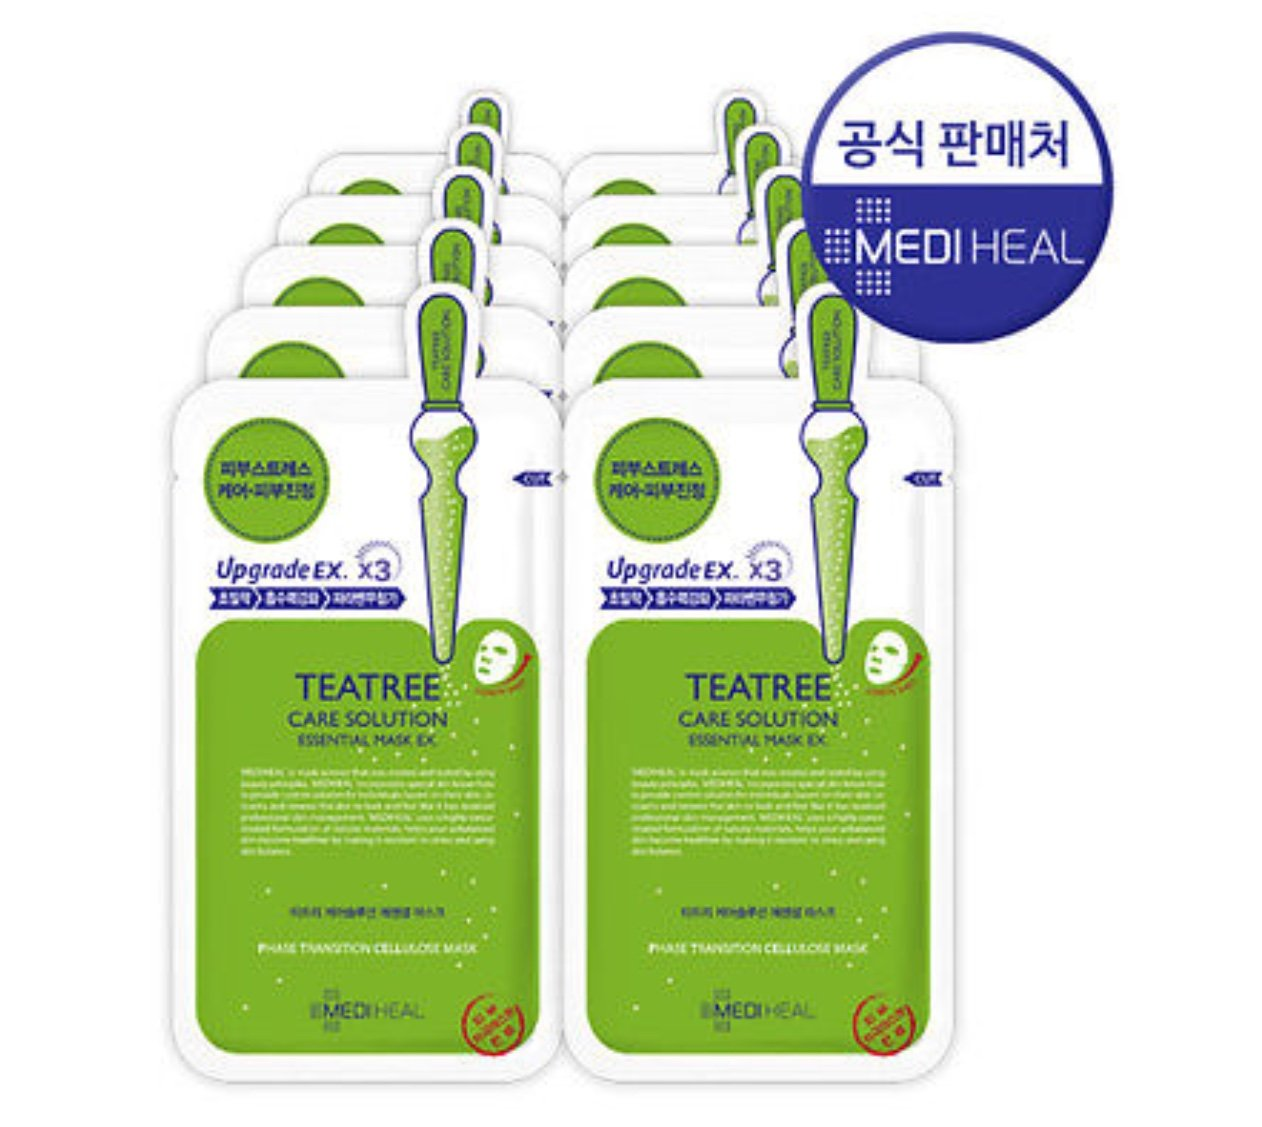 10Pcs MediHeal Teatree Healing Solution Essential Mask Pack Sheets Made in Korea by Mediheal [Korean Beauty]